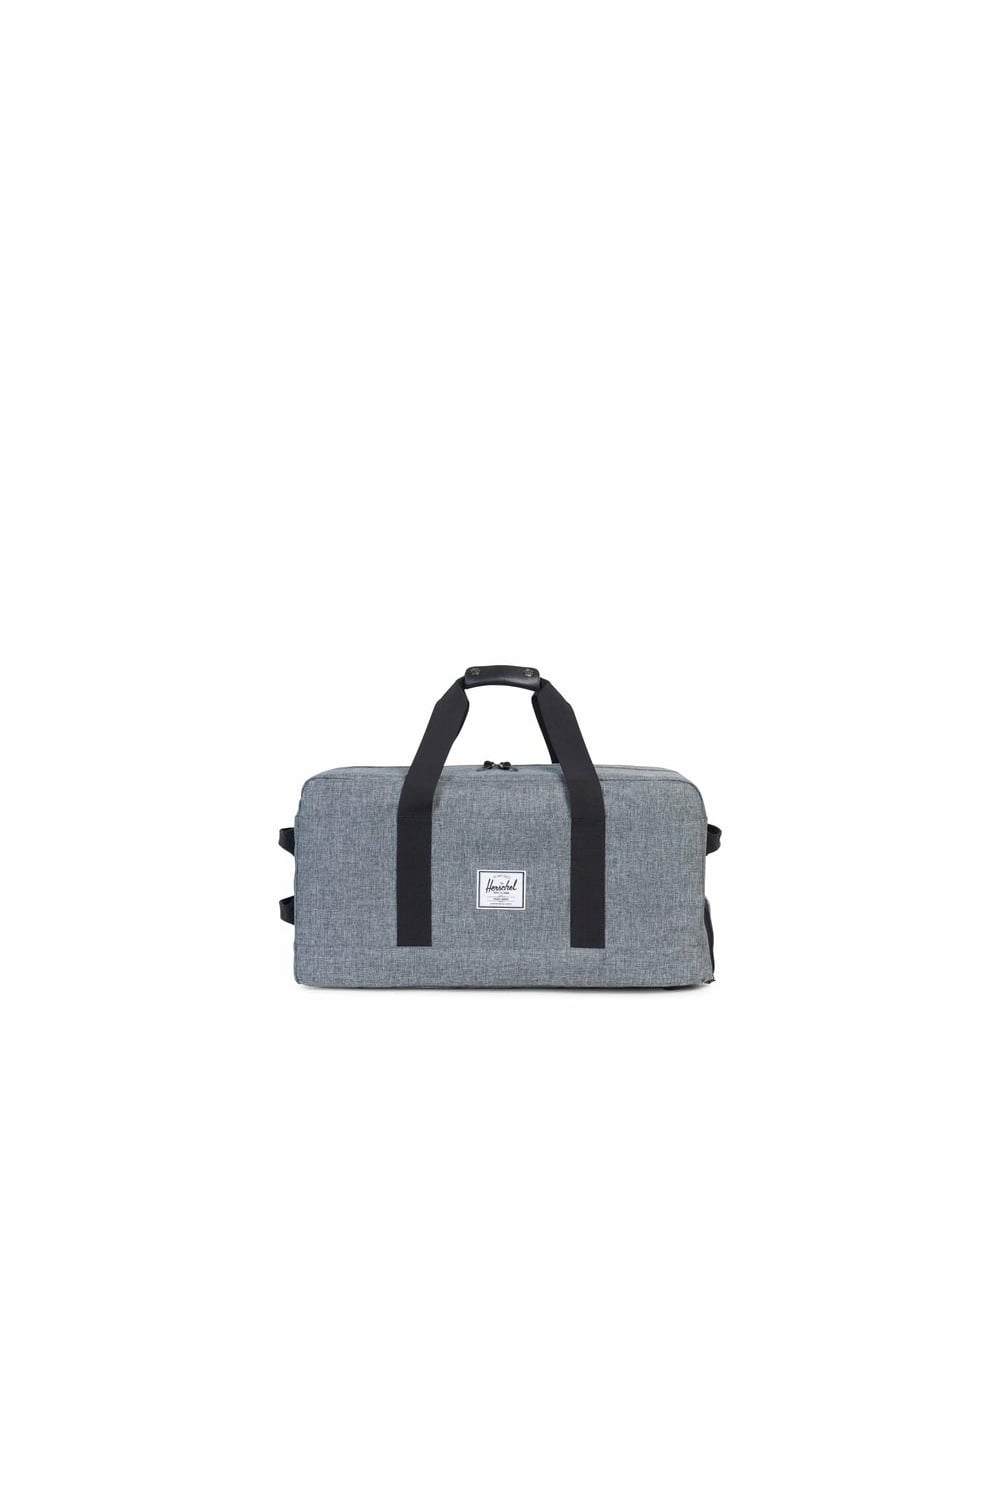 142a547f56ff Herschel Supply Co Outfitter Luggage Duffle Bag (Raven Crosshatch ...